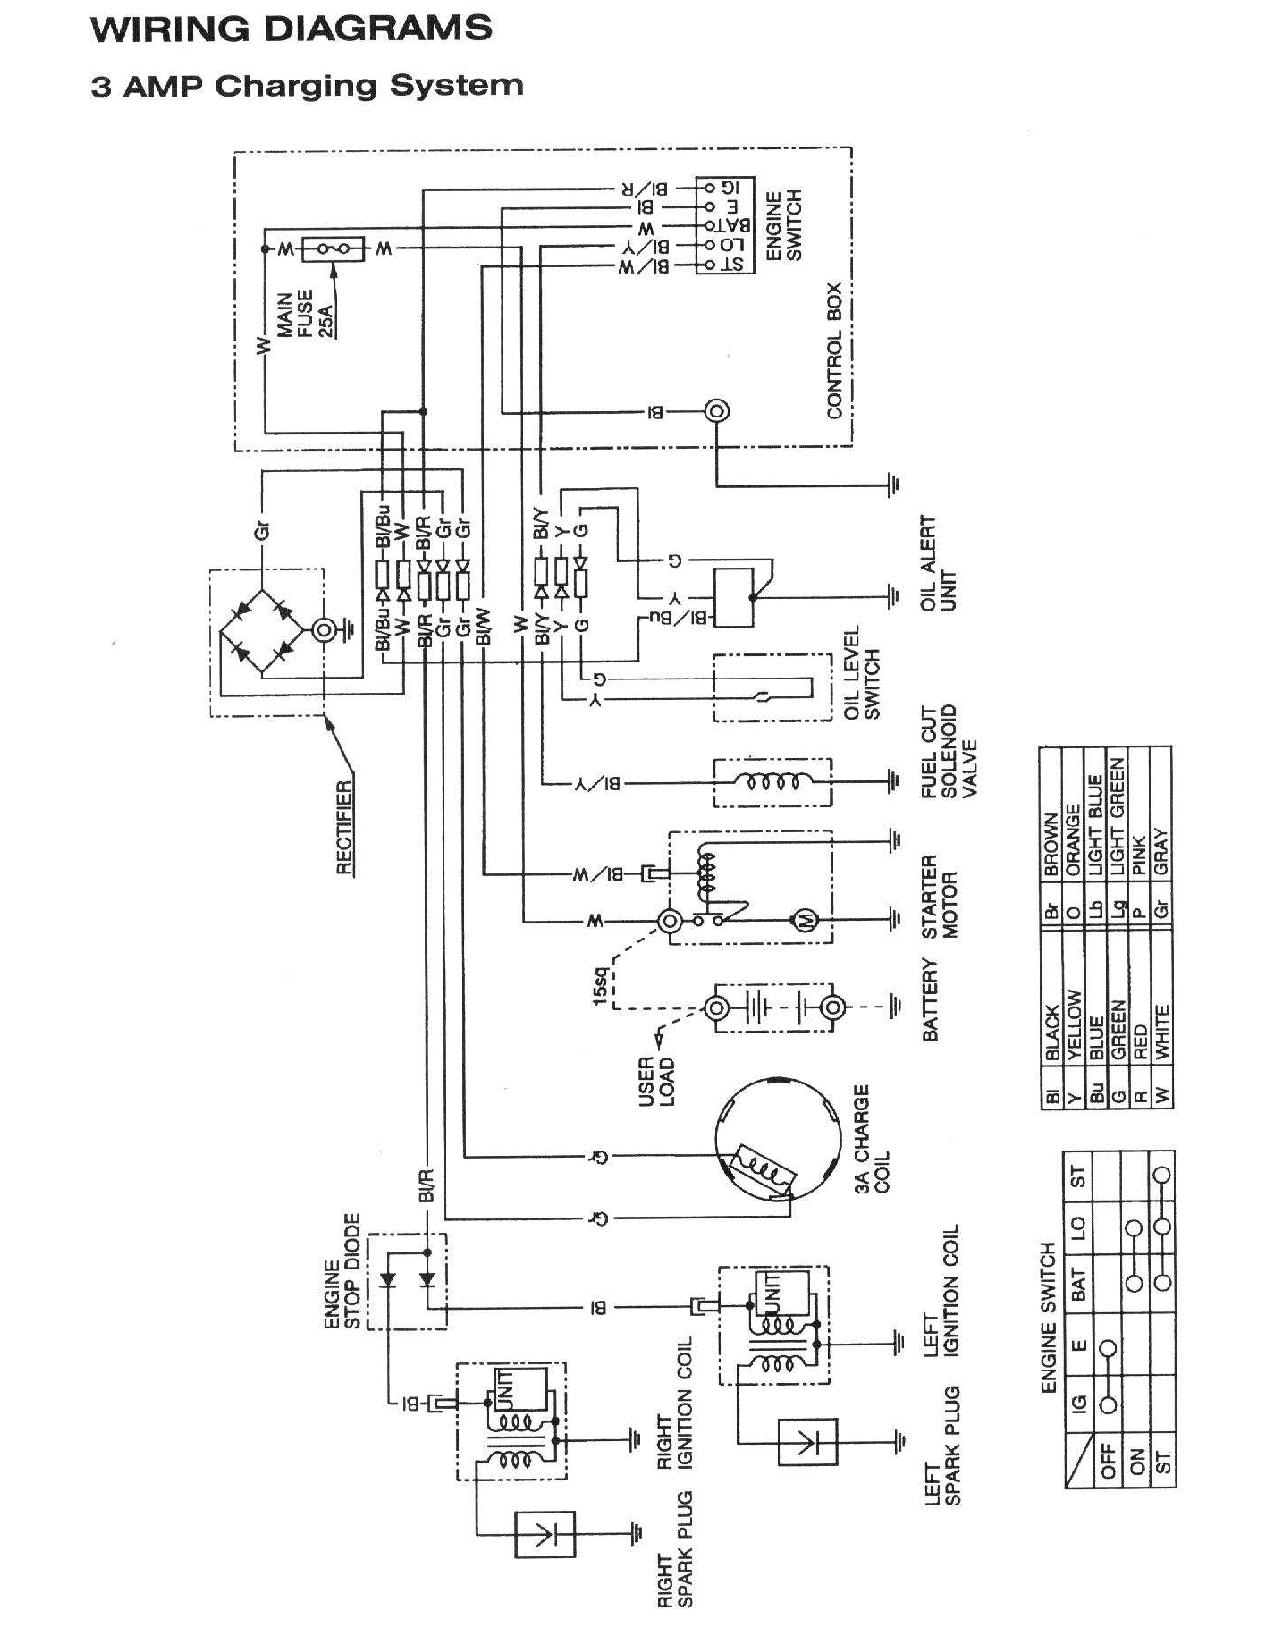 Briggs And Stratton Charging System Wiring Diagram Without Manual Guide